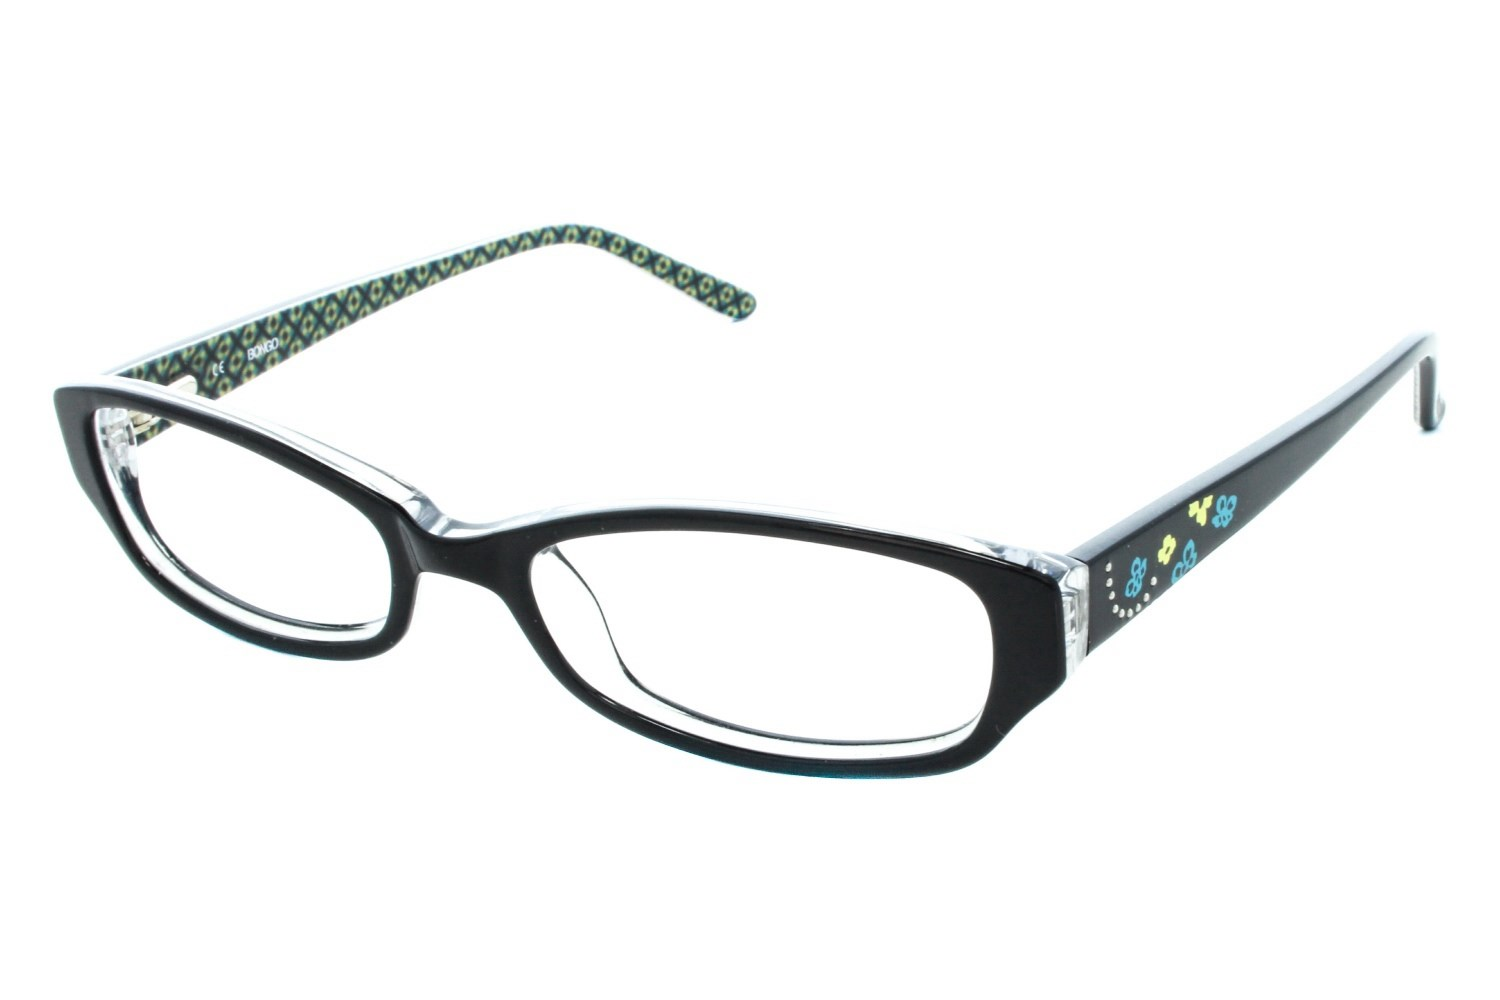 Bongo B Candice Prescription Eyeglasses Frames